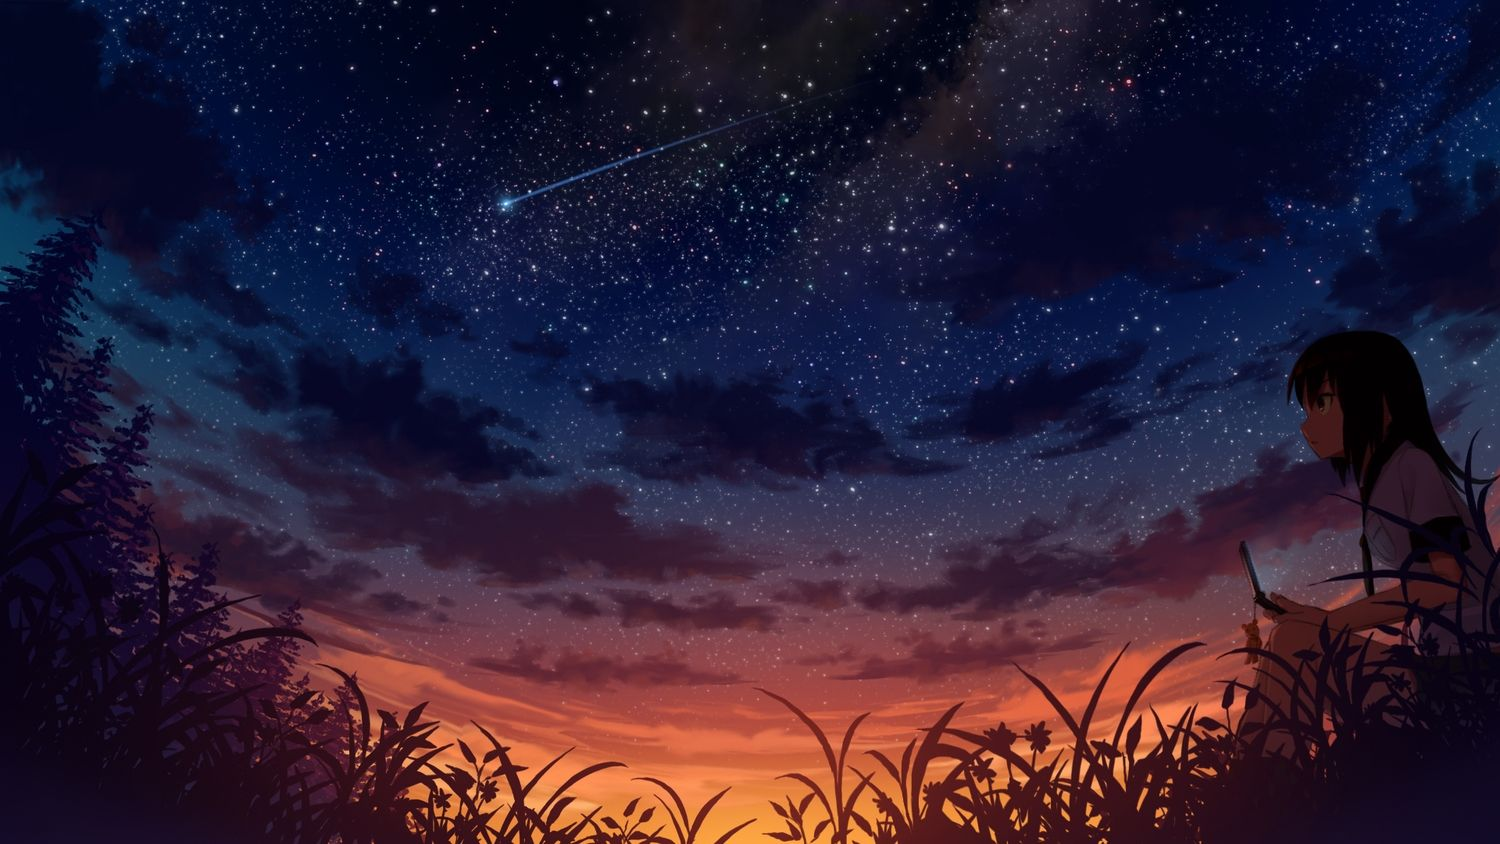 Girl watching the sunset wallpaper - Anime wallpapers - #30679